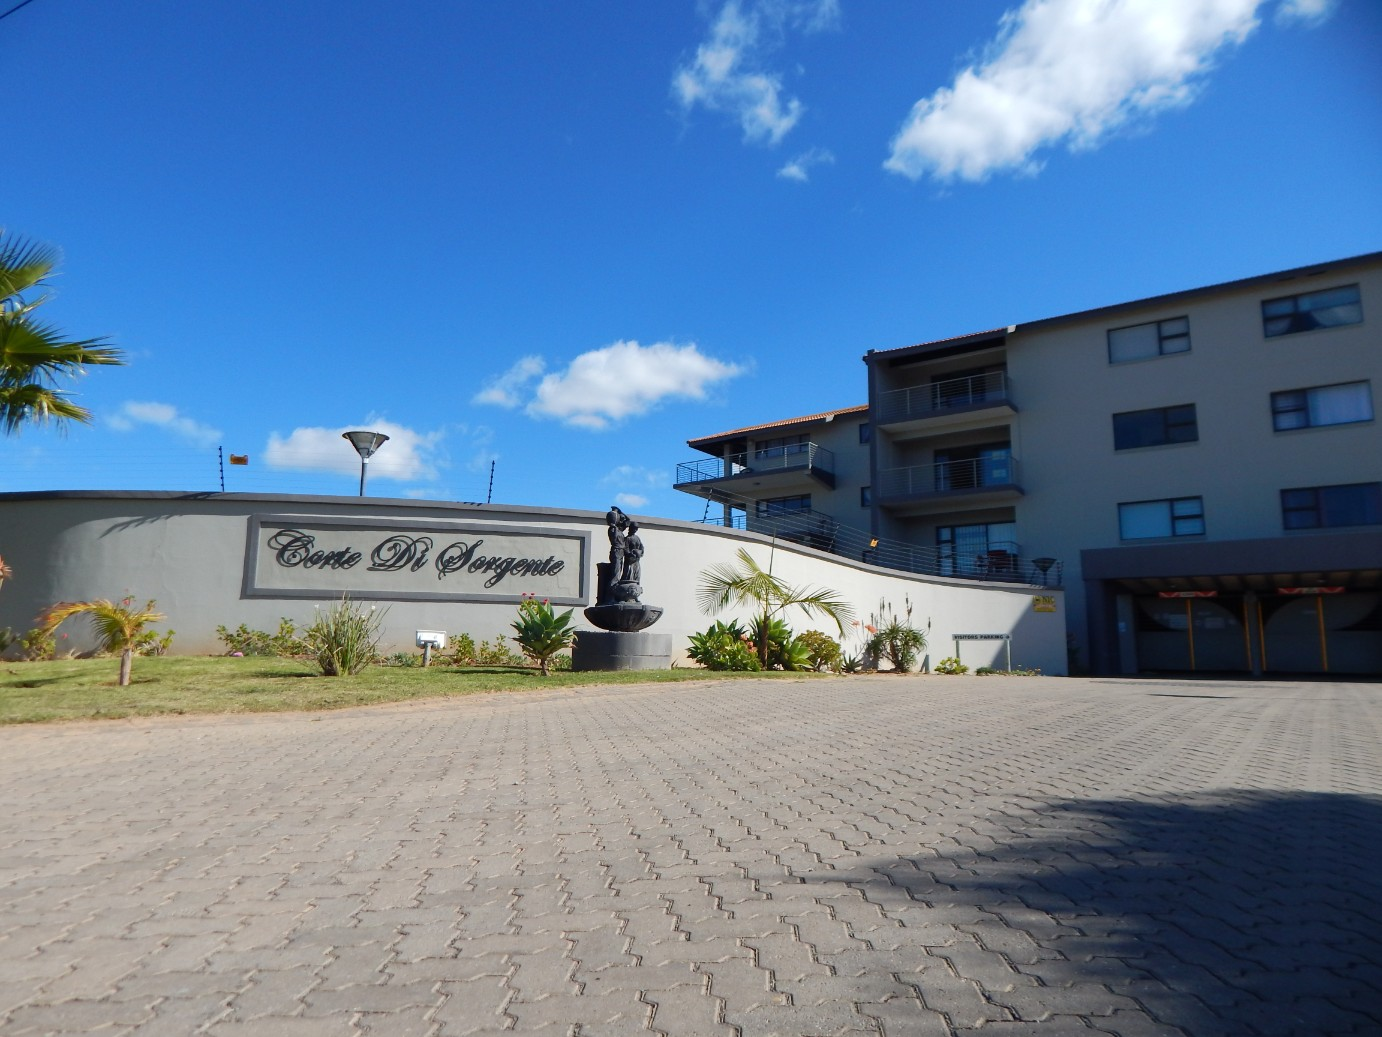 2 Bedroom apartment in Hartenbos up for the taking.